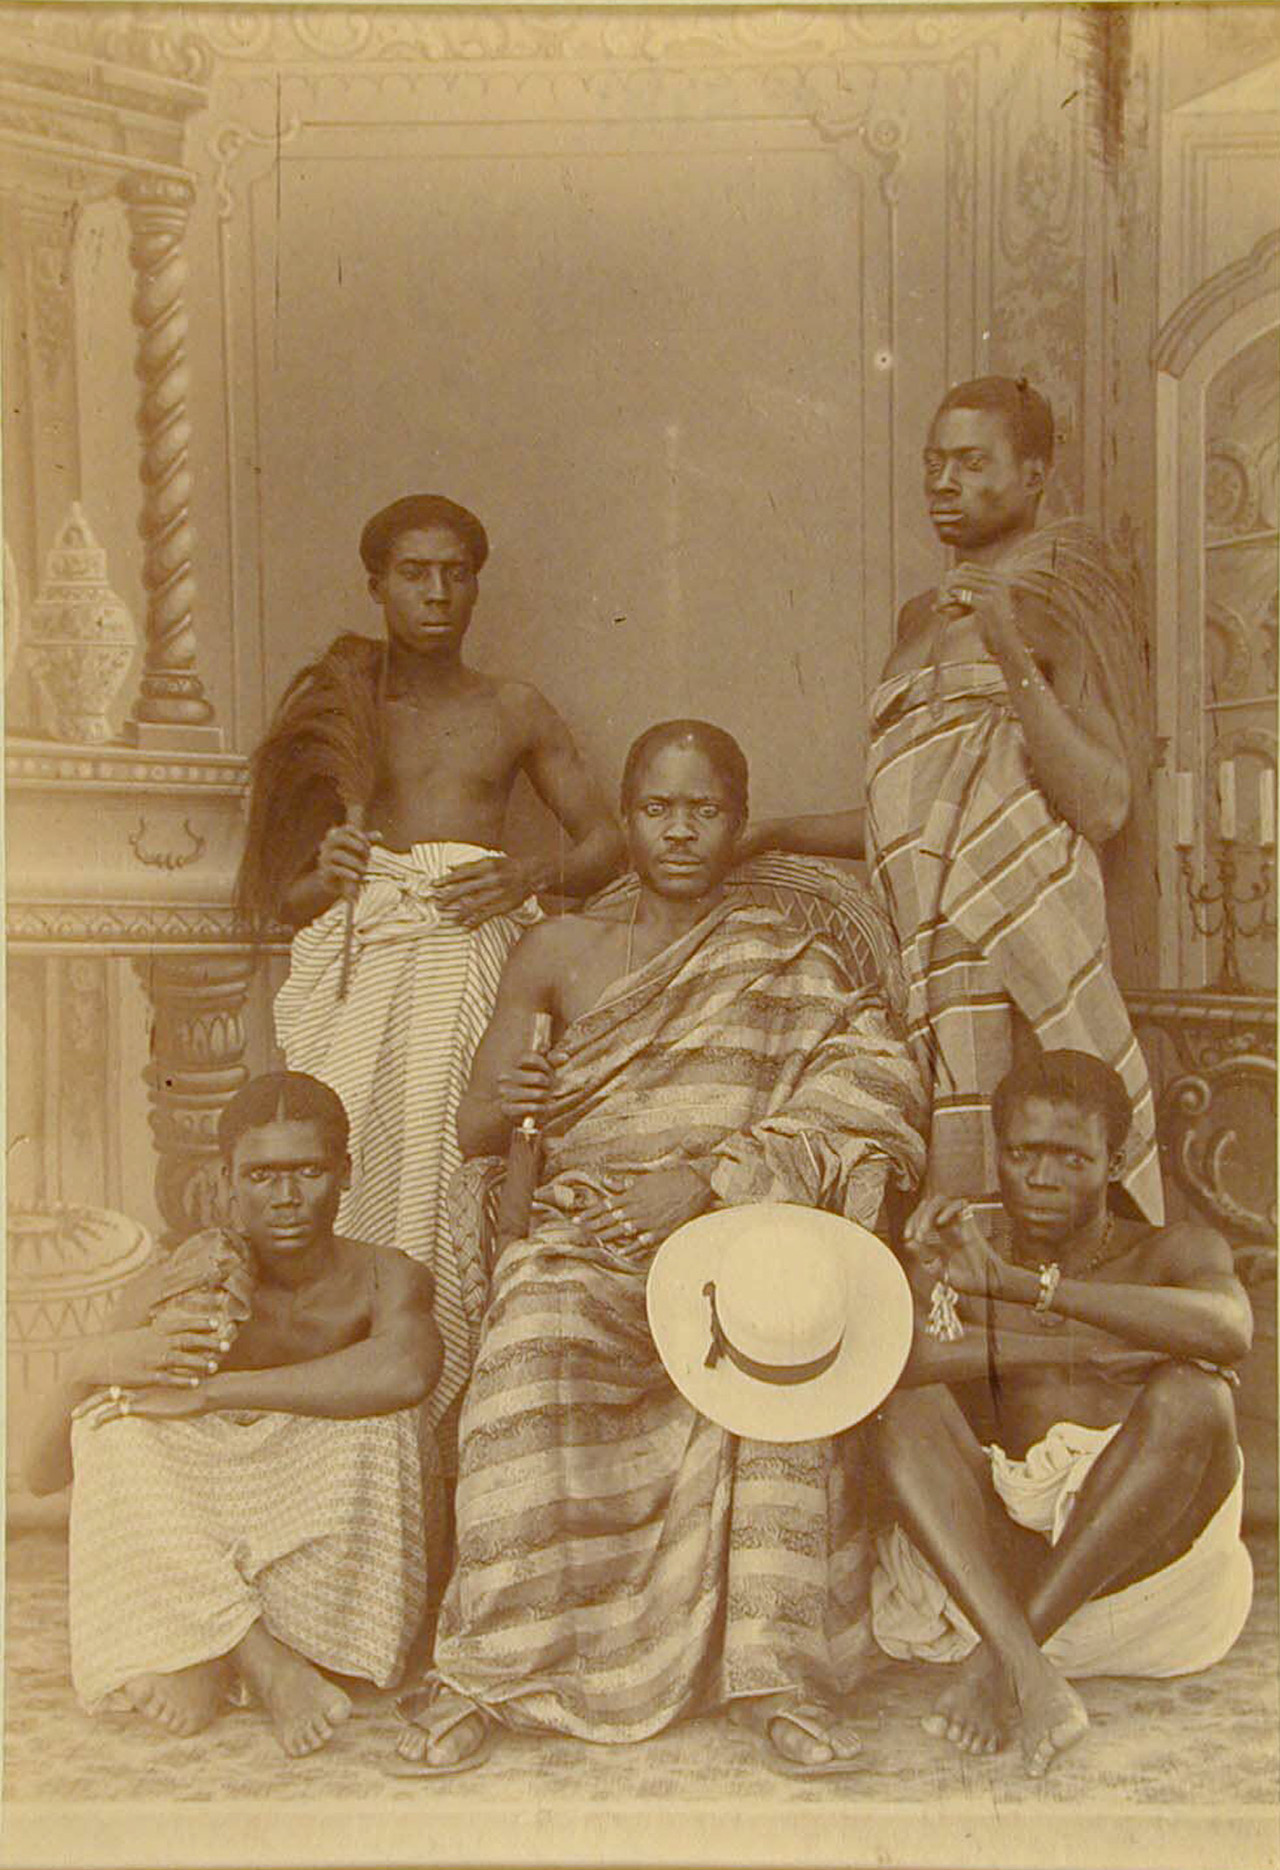 George A. G. and Albert George Lutterodt (Ghanaian, active from 1876) Five Men, ca. 1880-5 Albumen silver print from glass negative 6 x 4 in (15.2 x 1.5 cm) Purchase, Ross Family Fund Gift, 1999 (1999.184.1)